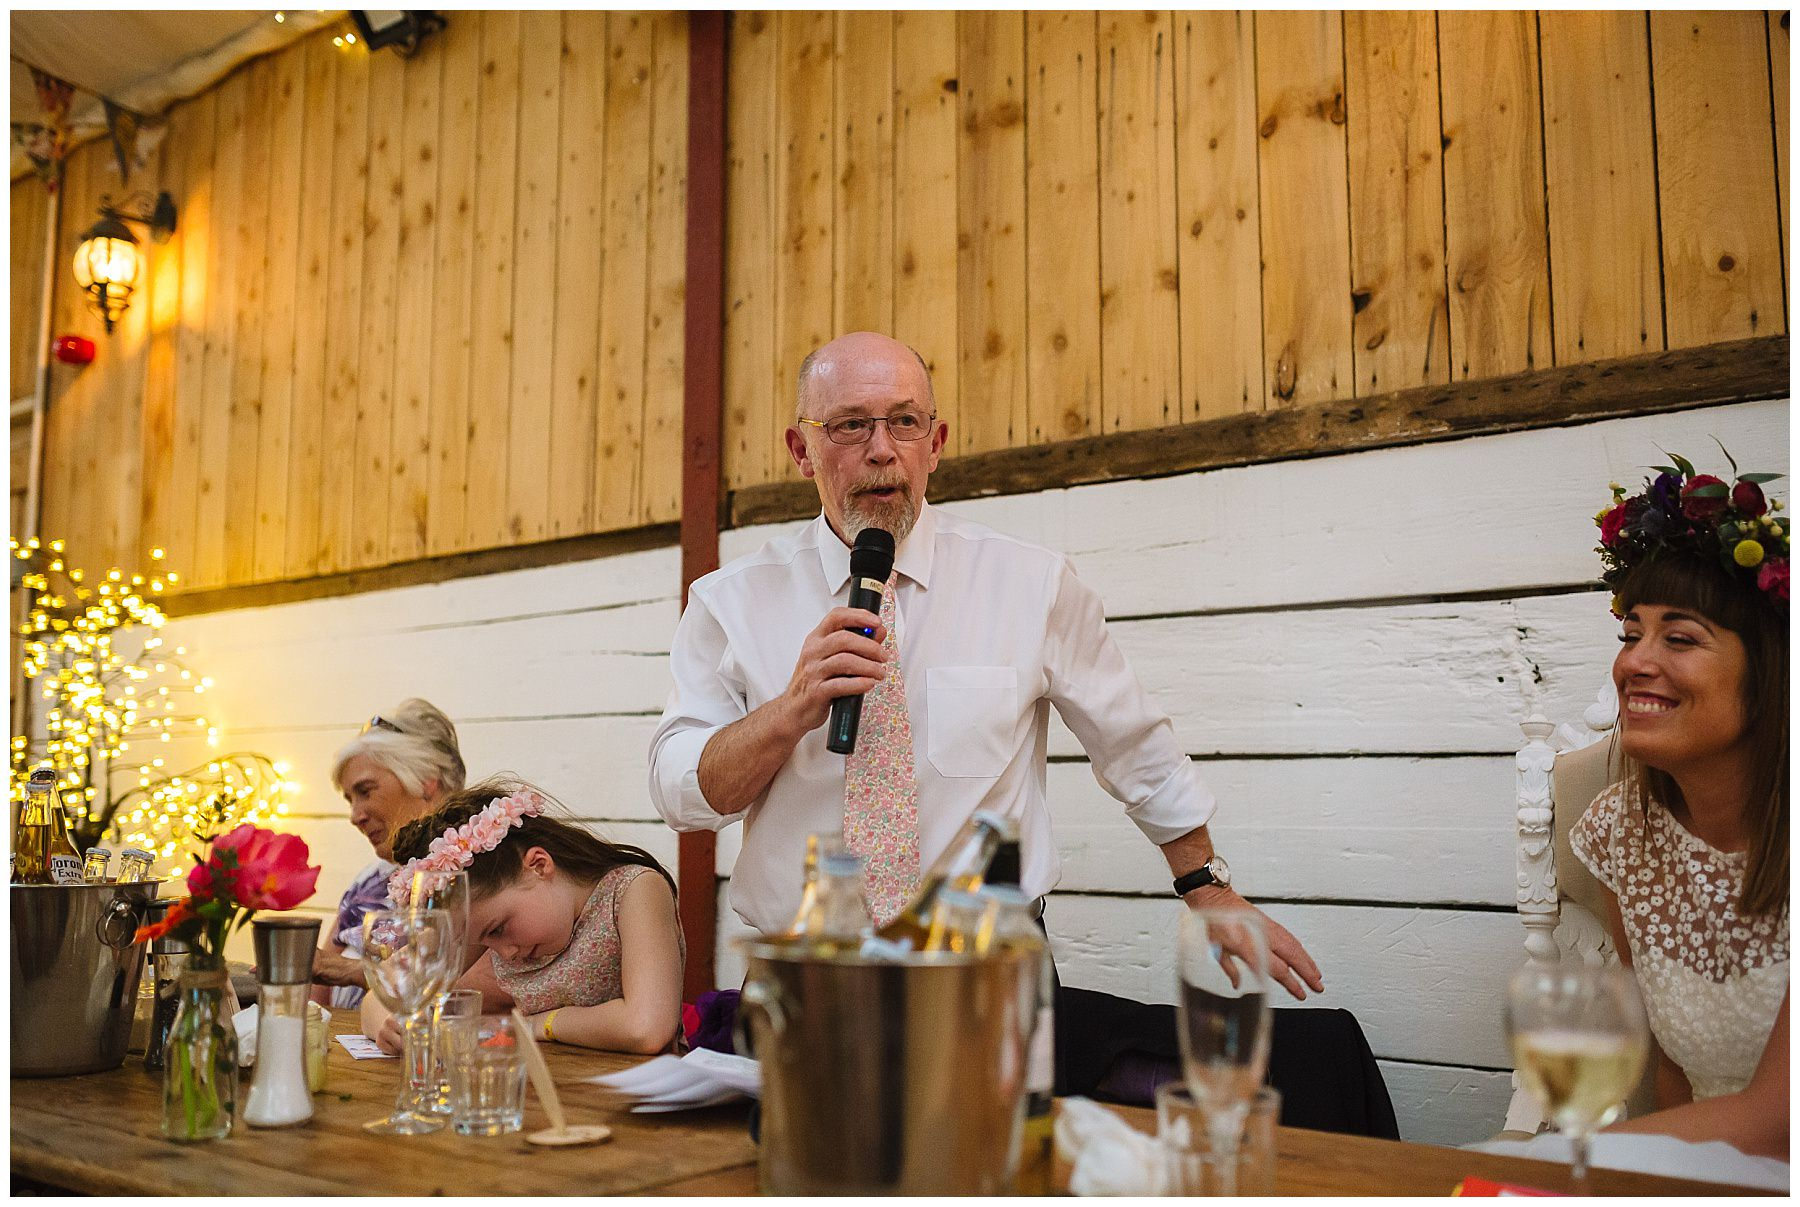 Father of the brides speech at the wellbeing farm